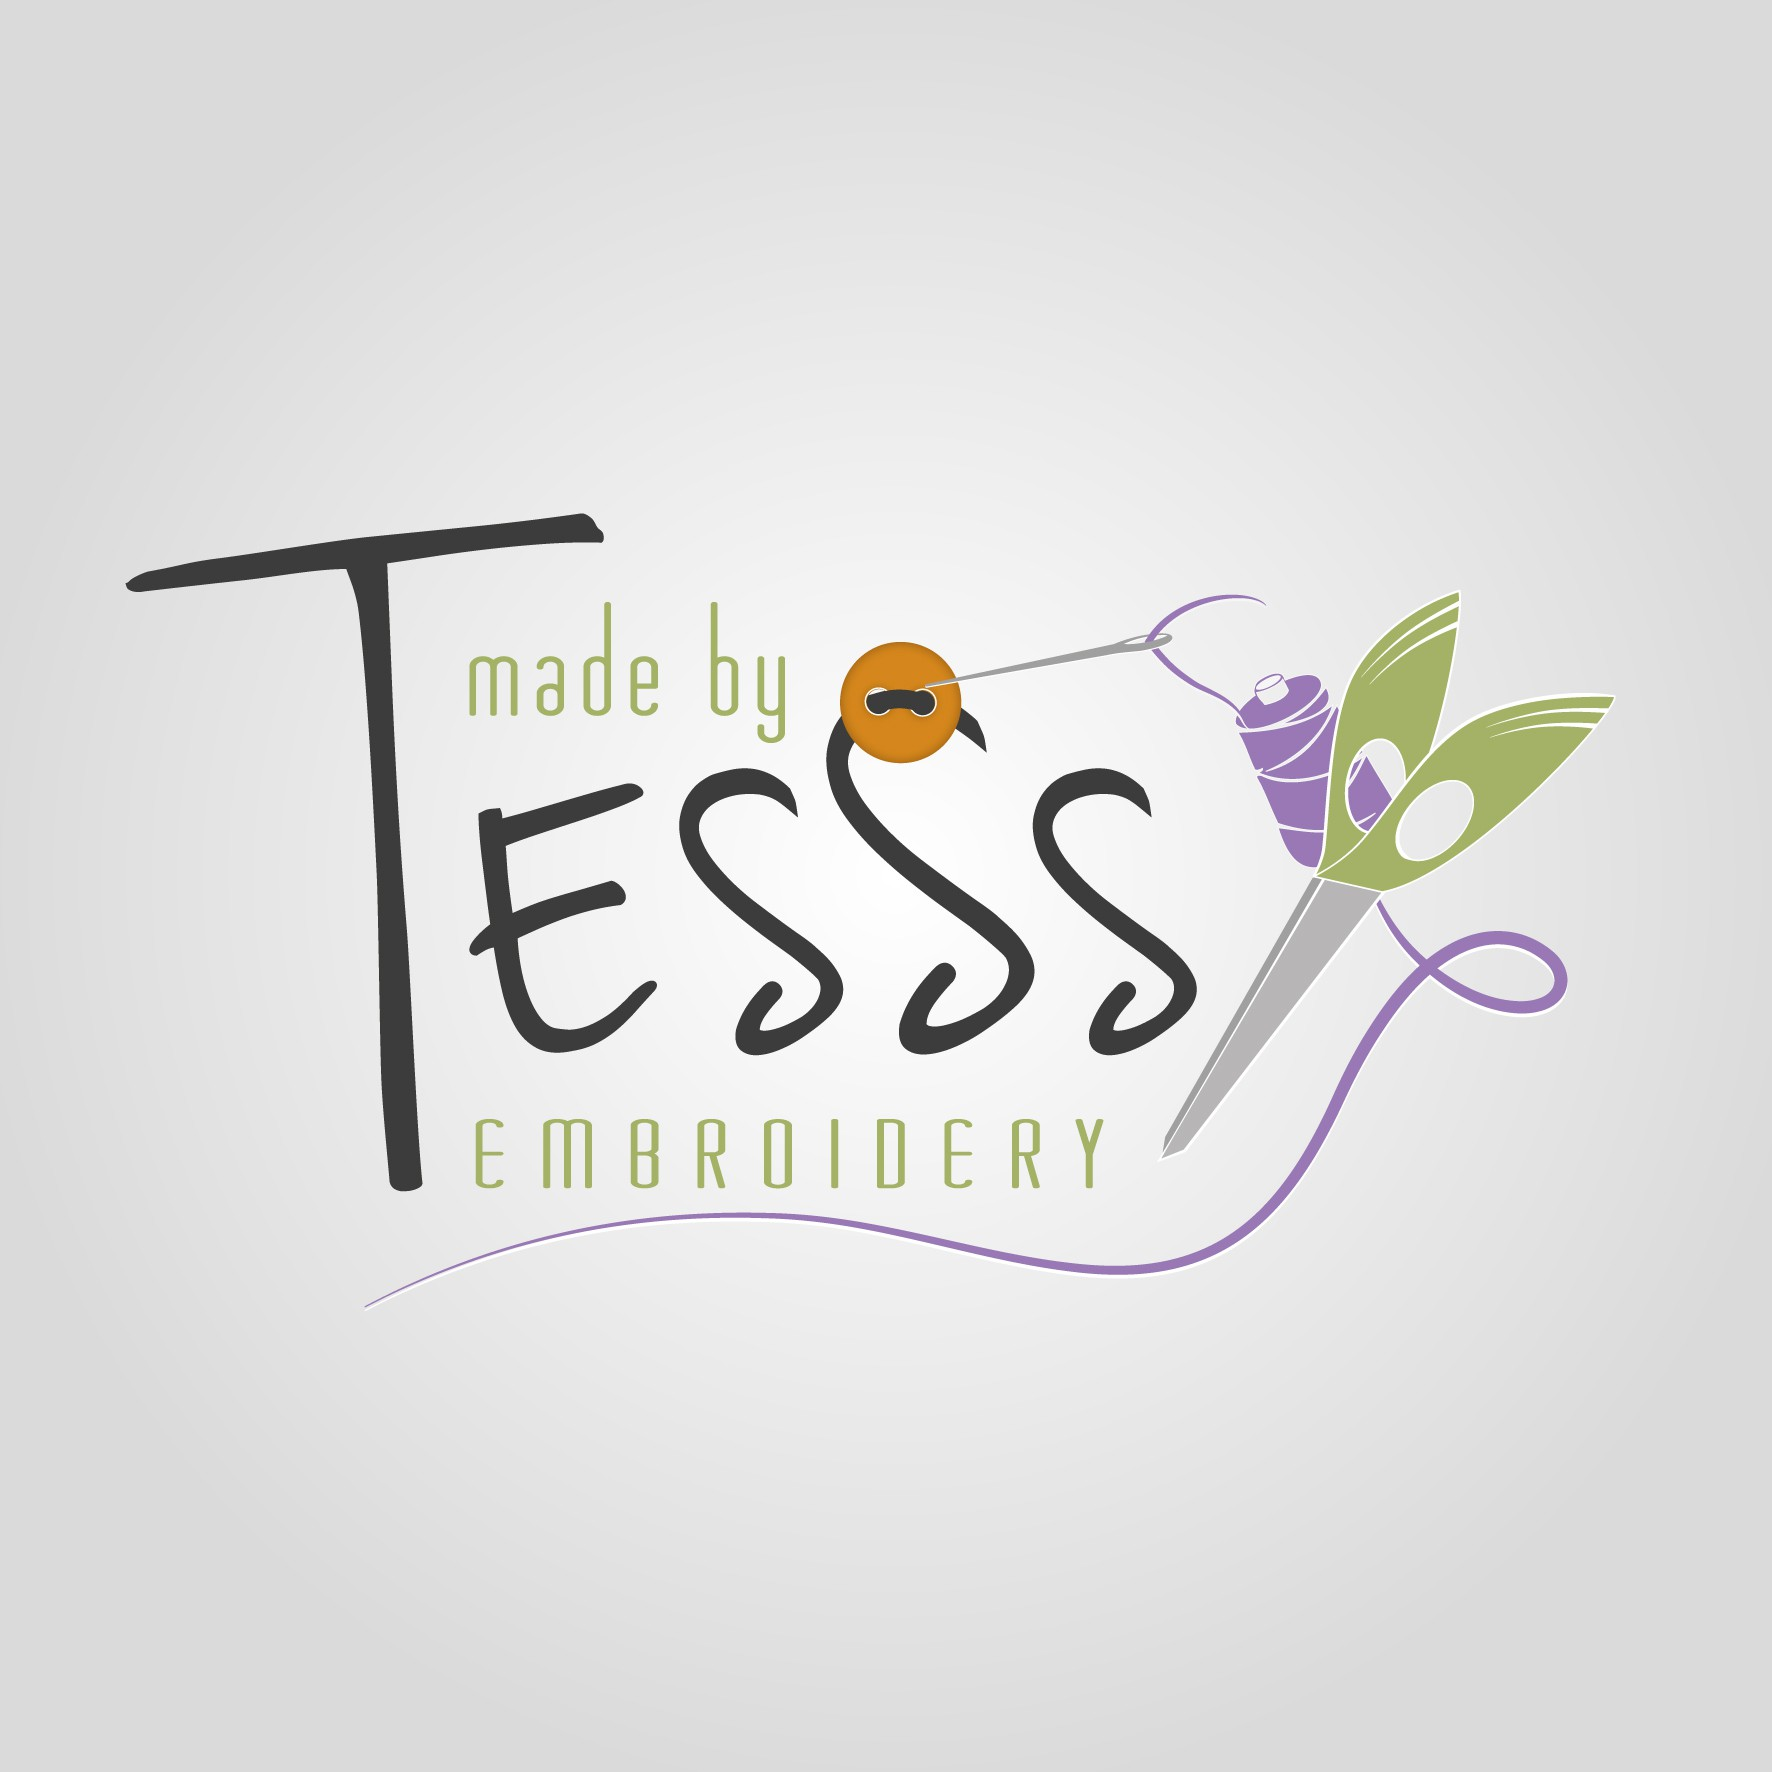 logo for Made by TESSS embroidery